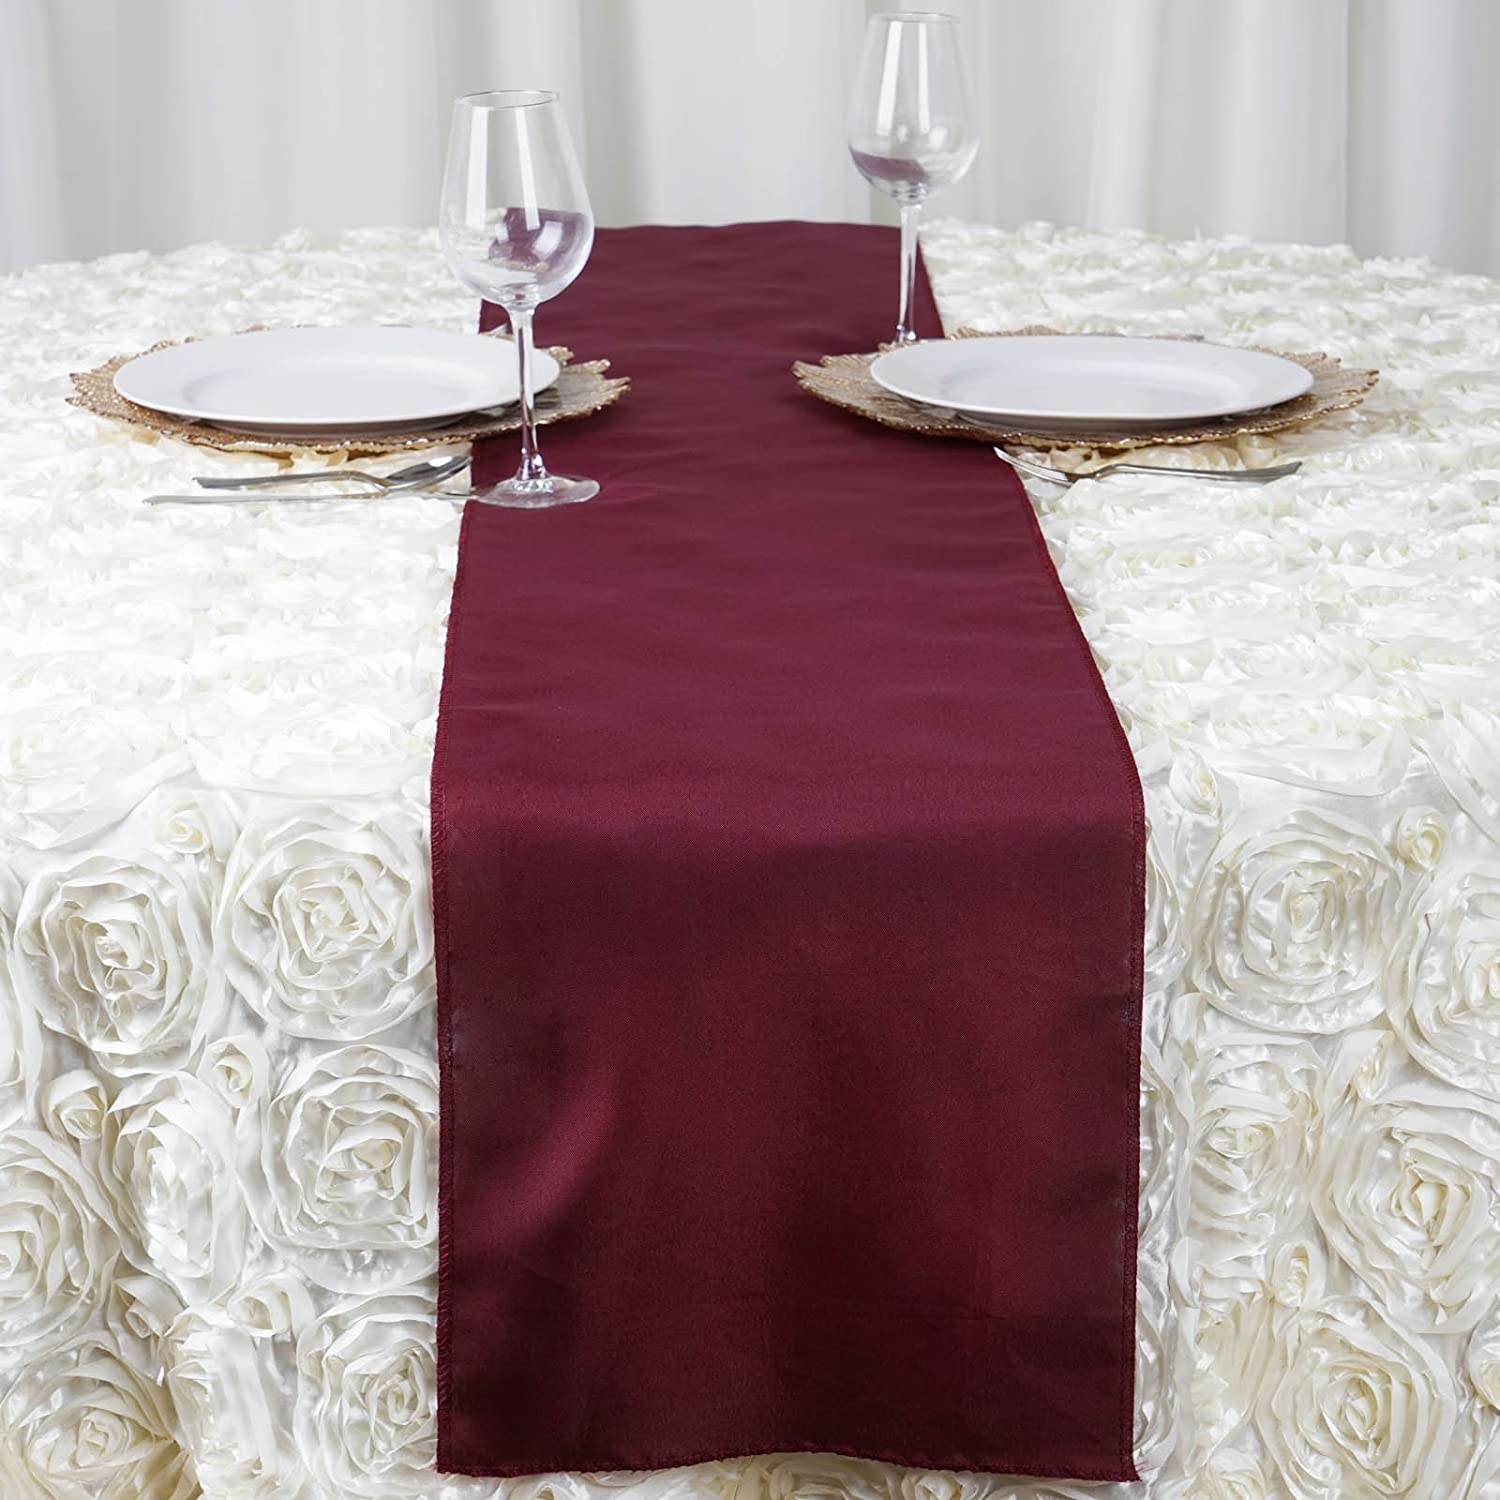 Amazoncom Balsacircle 5 Pcs 12 X 108 Inch Burgundy Polyester Table